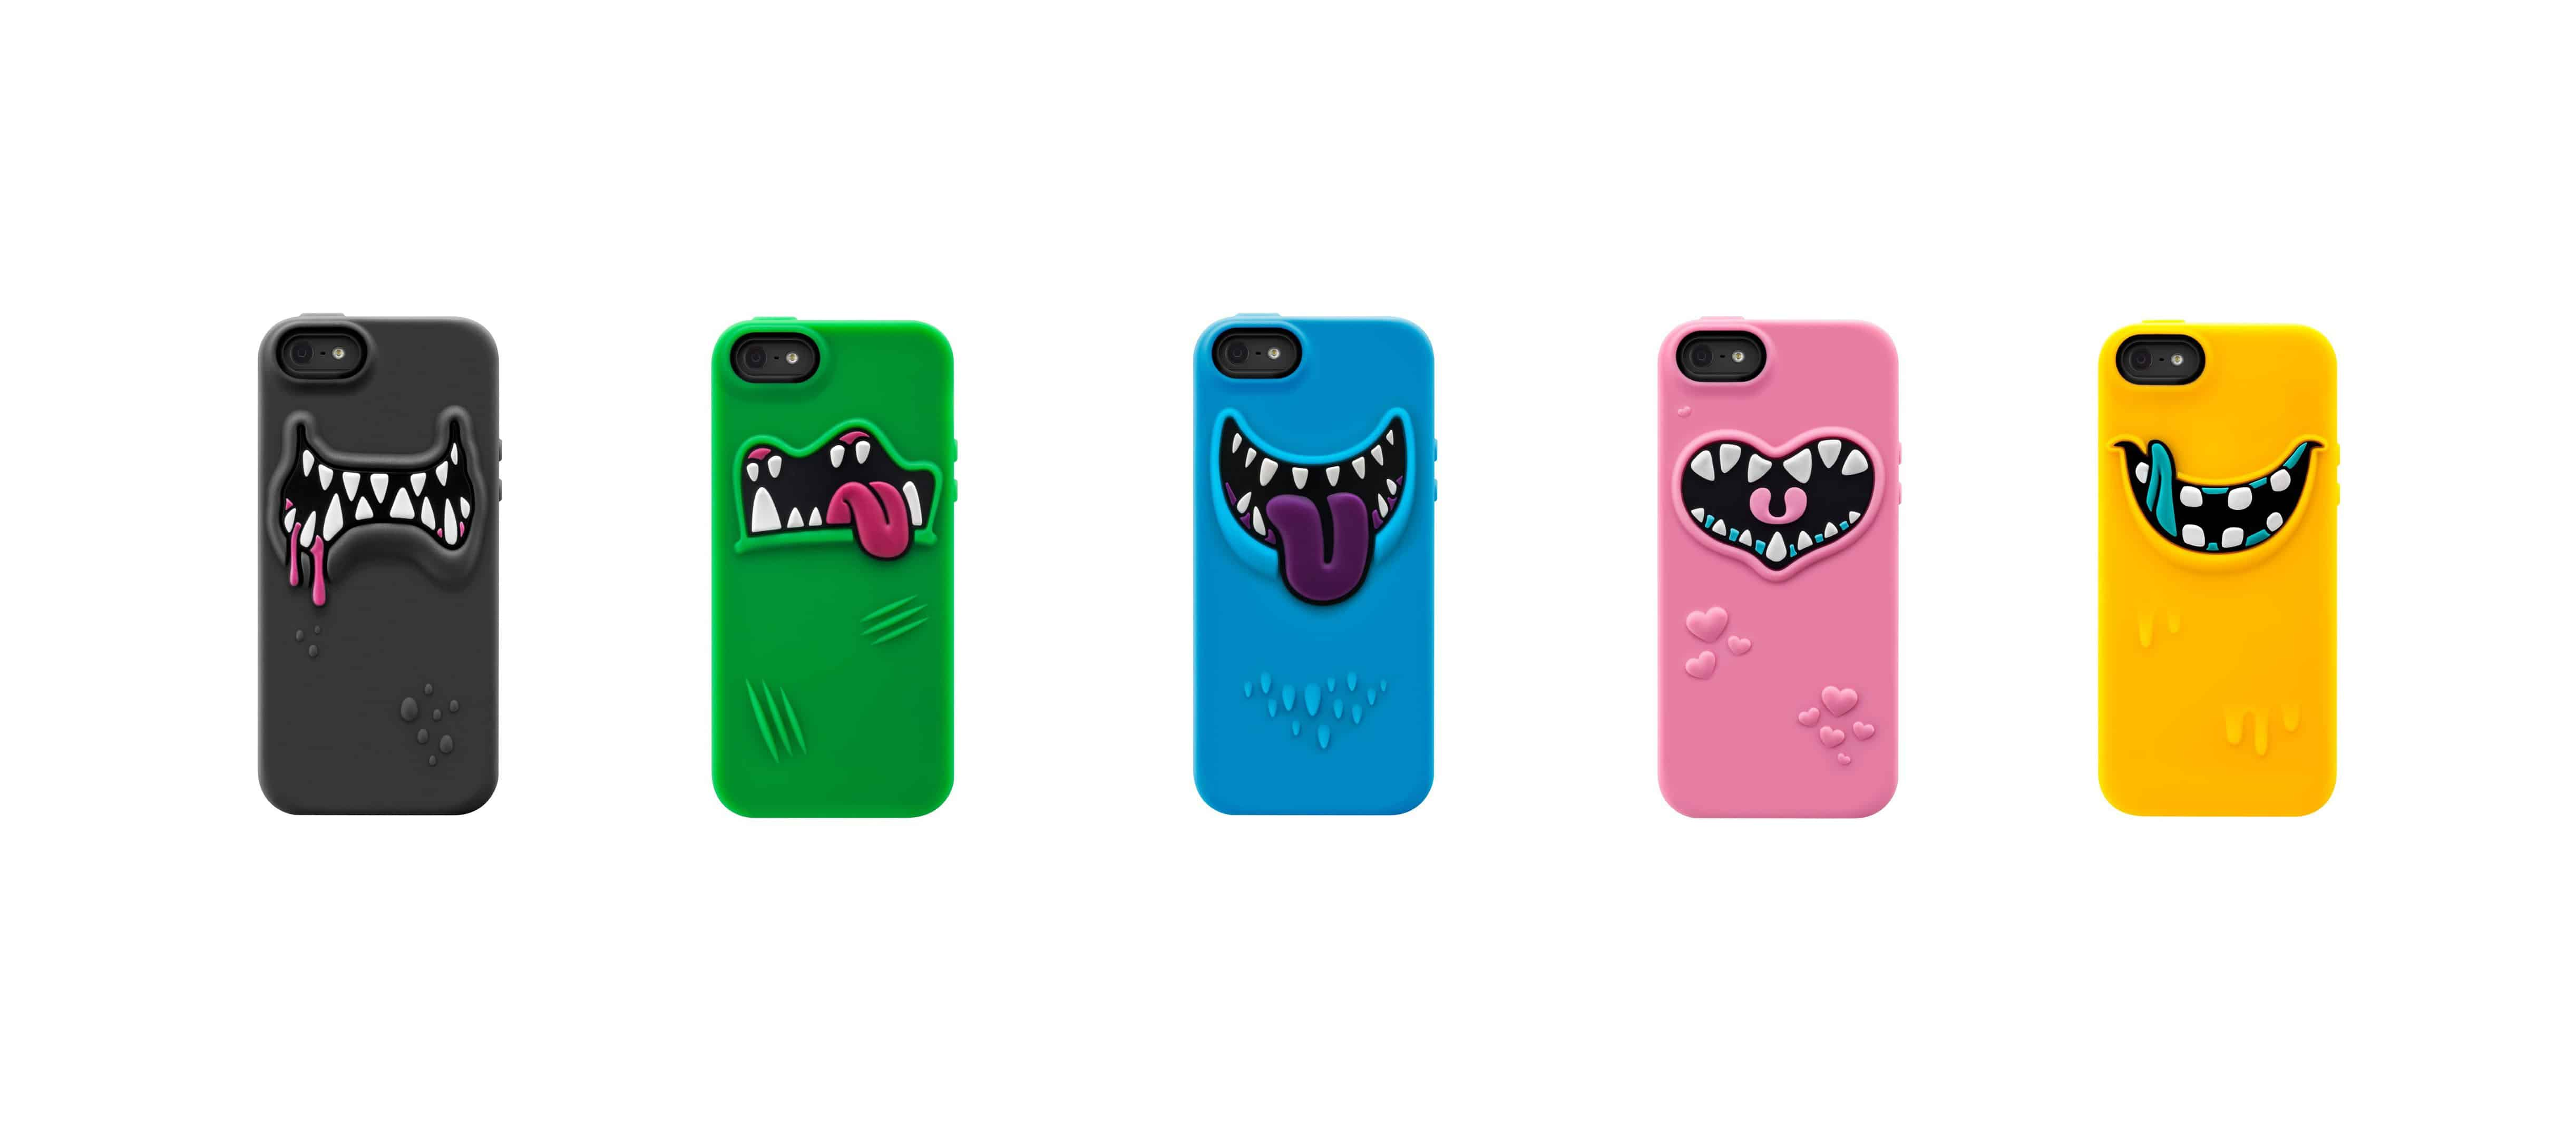 SwitchEasy Monsters Silicone Case for iPhone Gift Idea for Kids